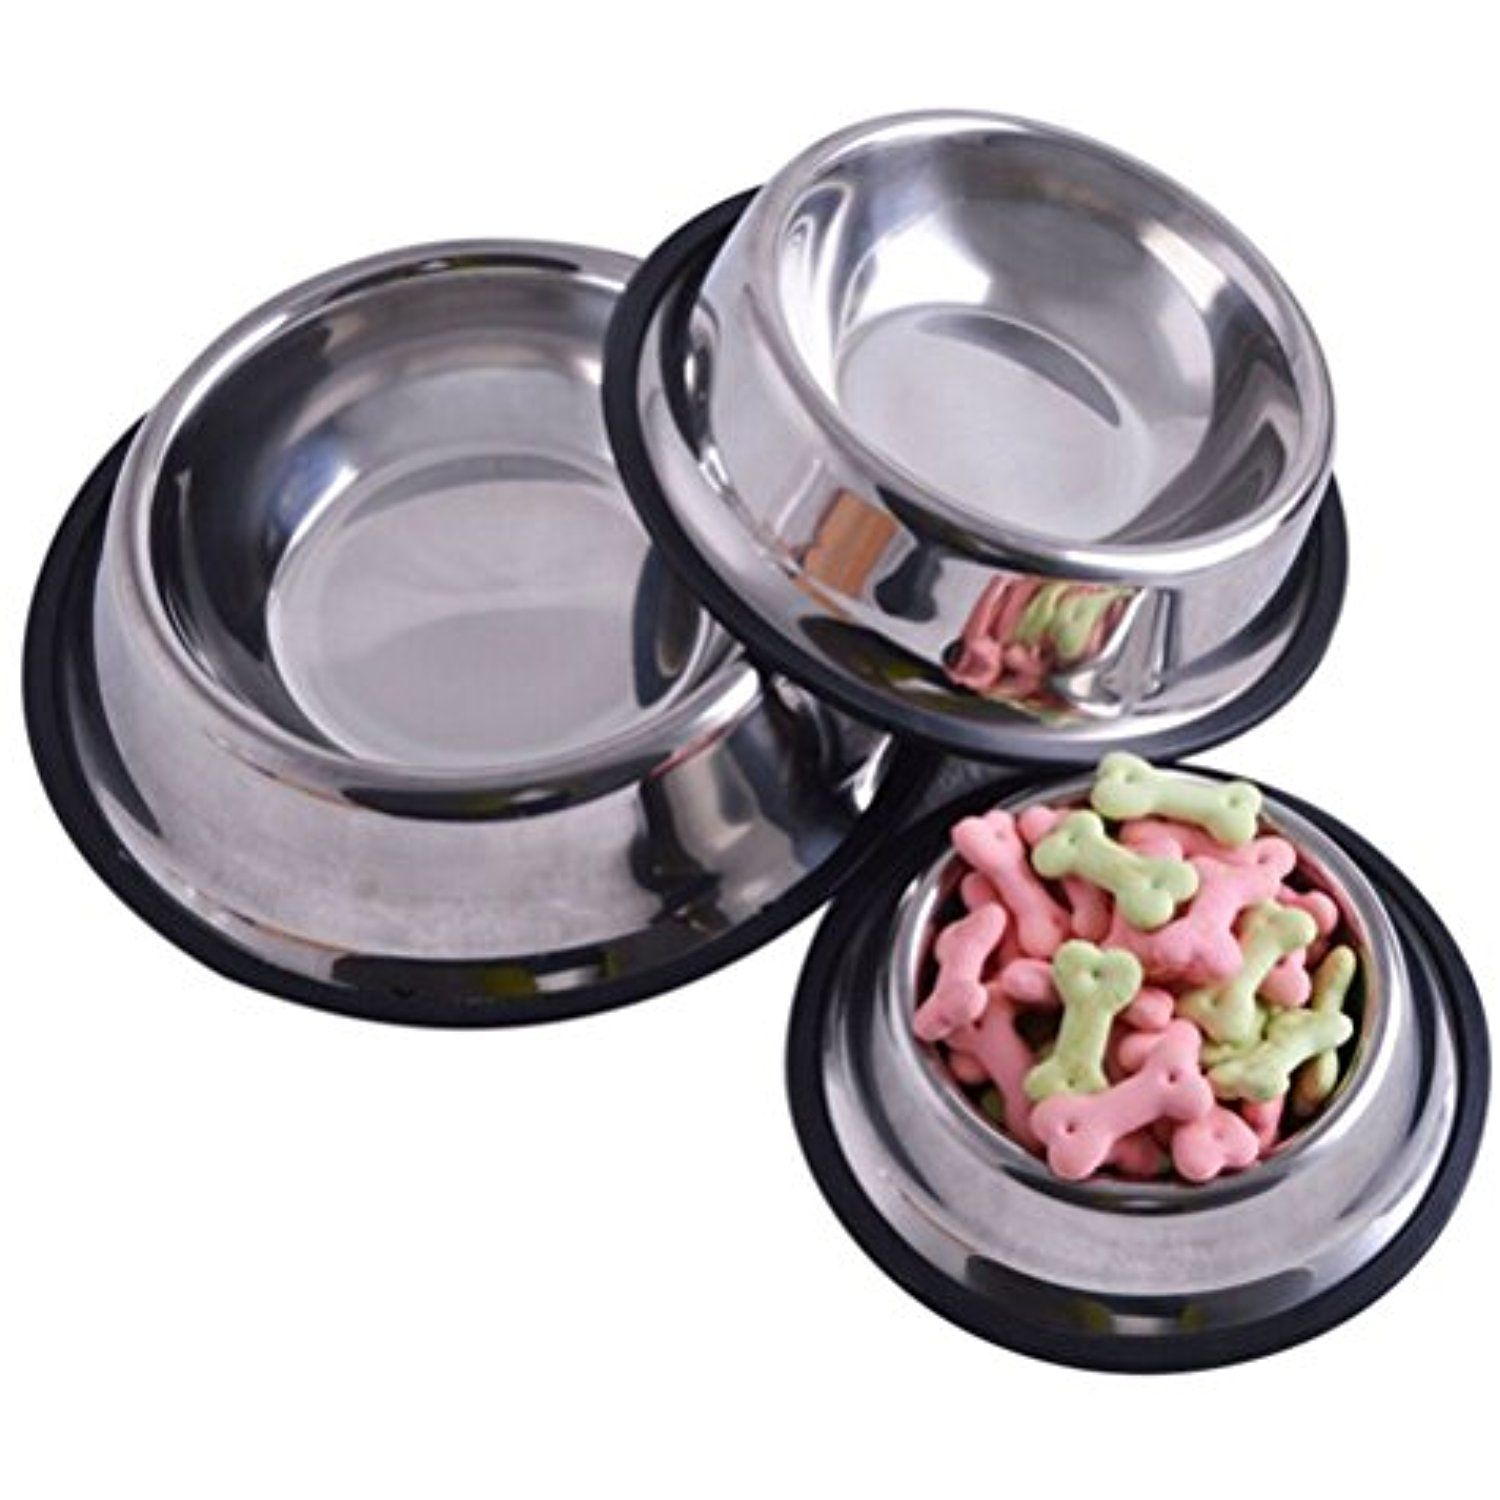 feeder eco today indipets product supplies overstock feeders shipping pet raised free friendly